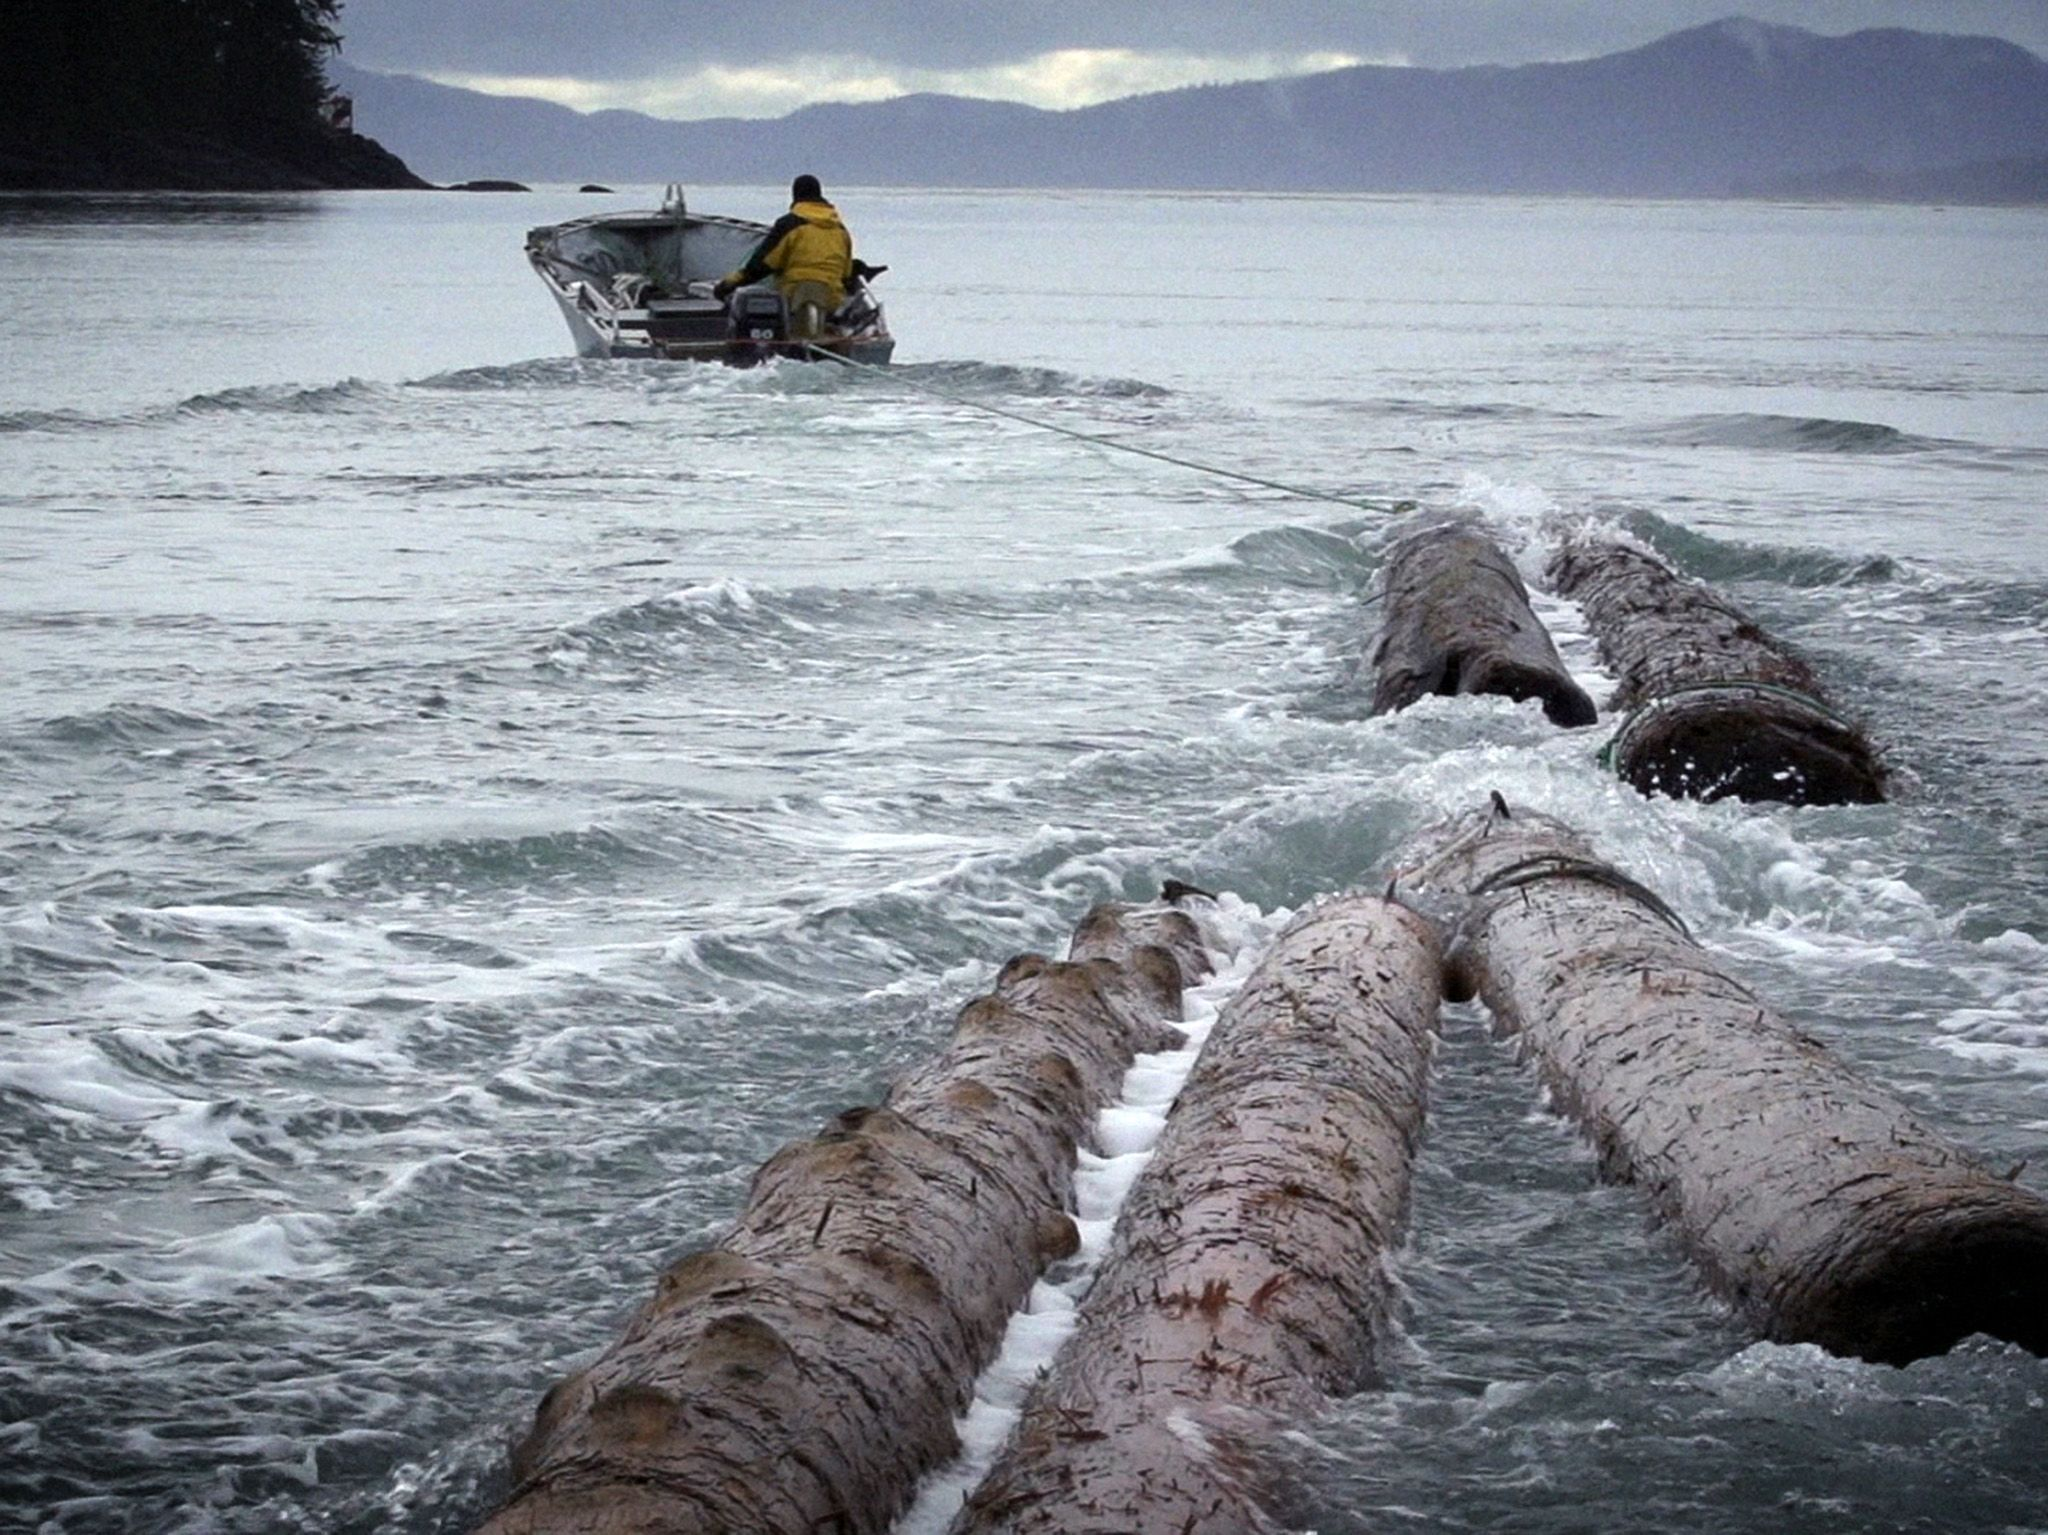 Sam collects logs for firewood. This image is from Lawless Island Alaska. [Photo of the day - September 2020]